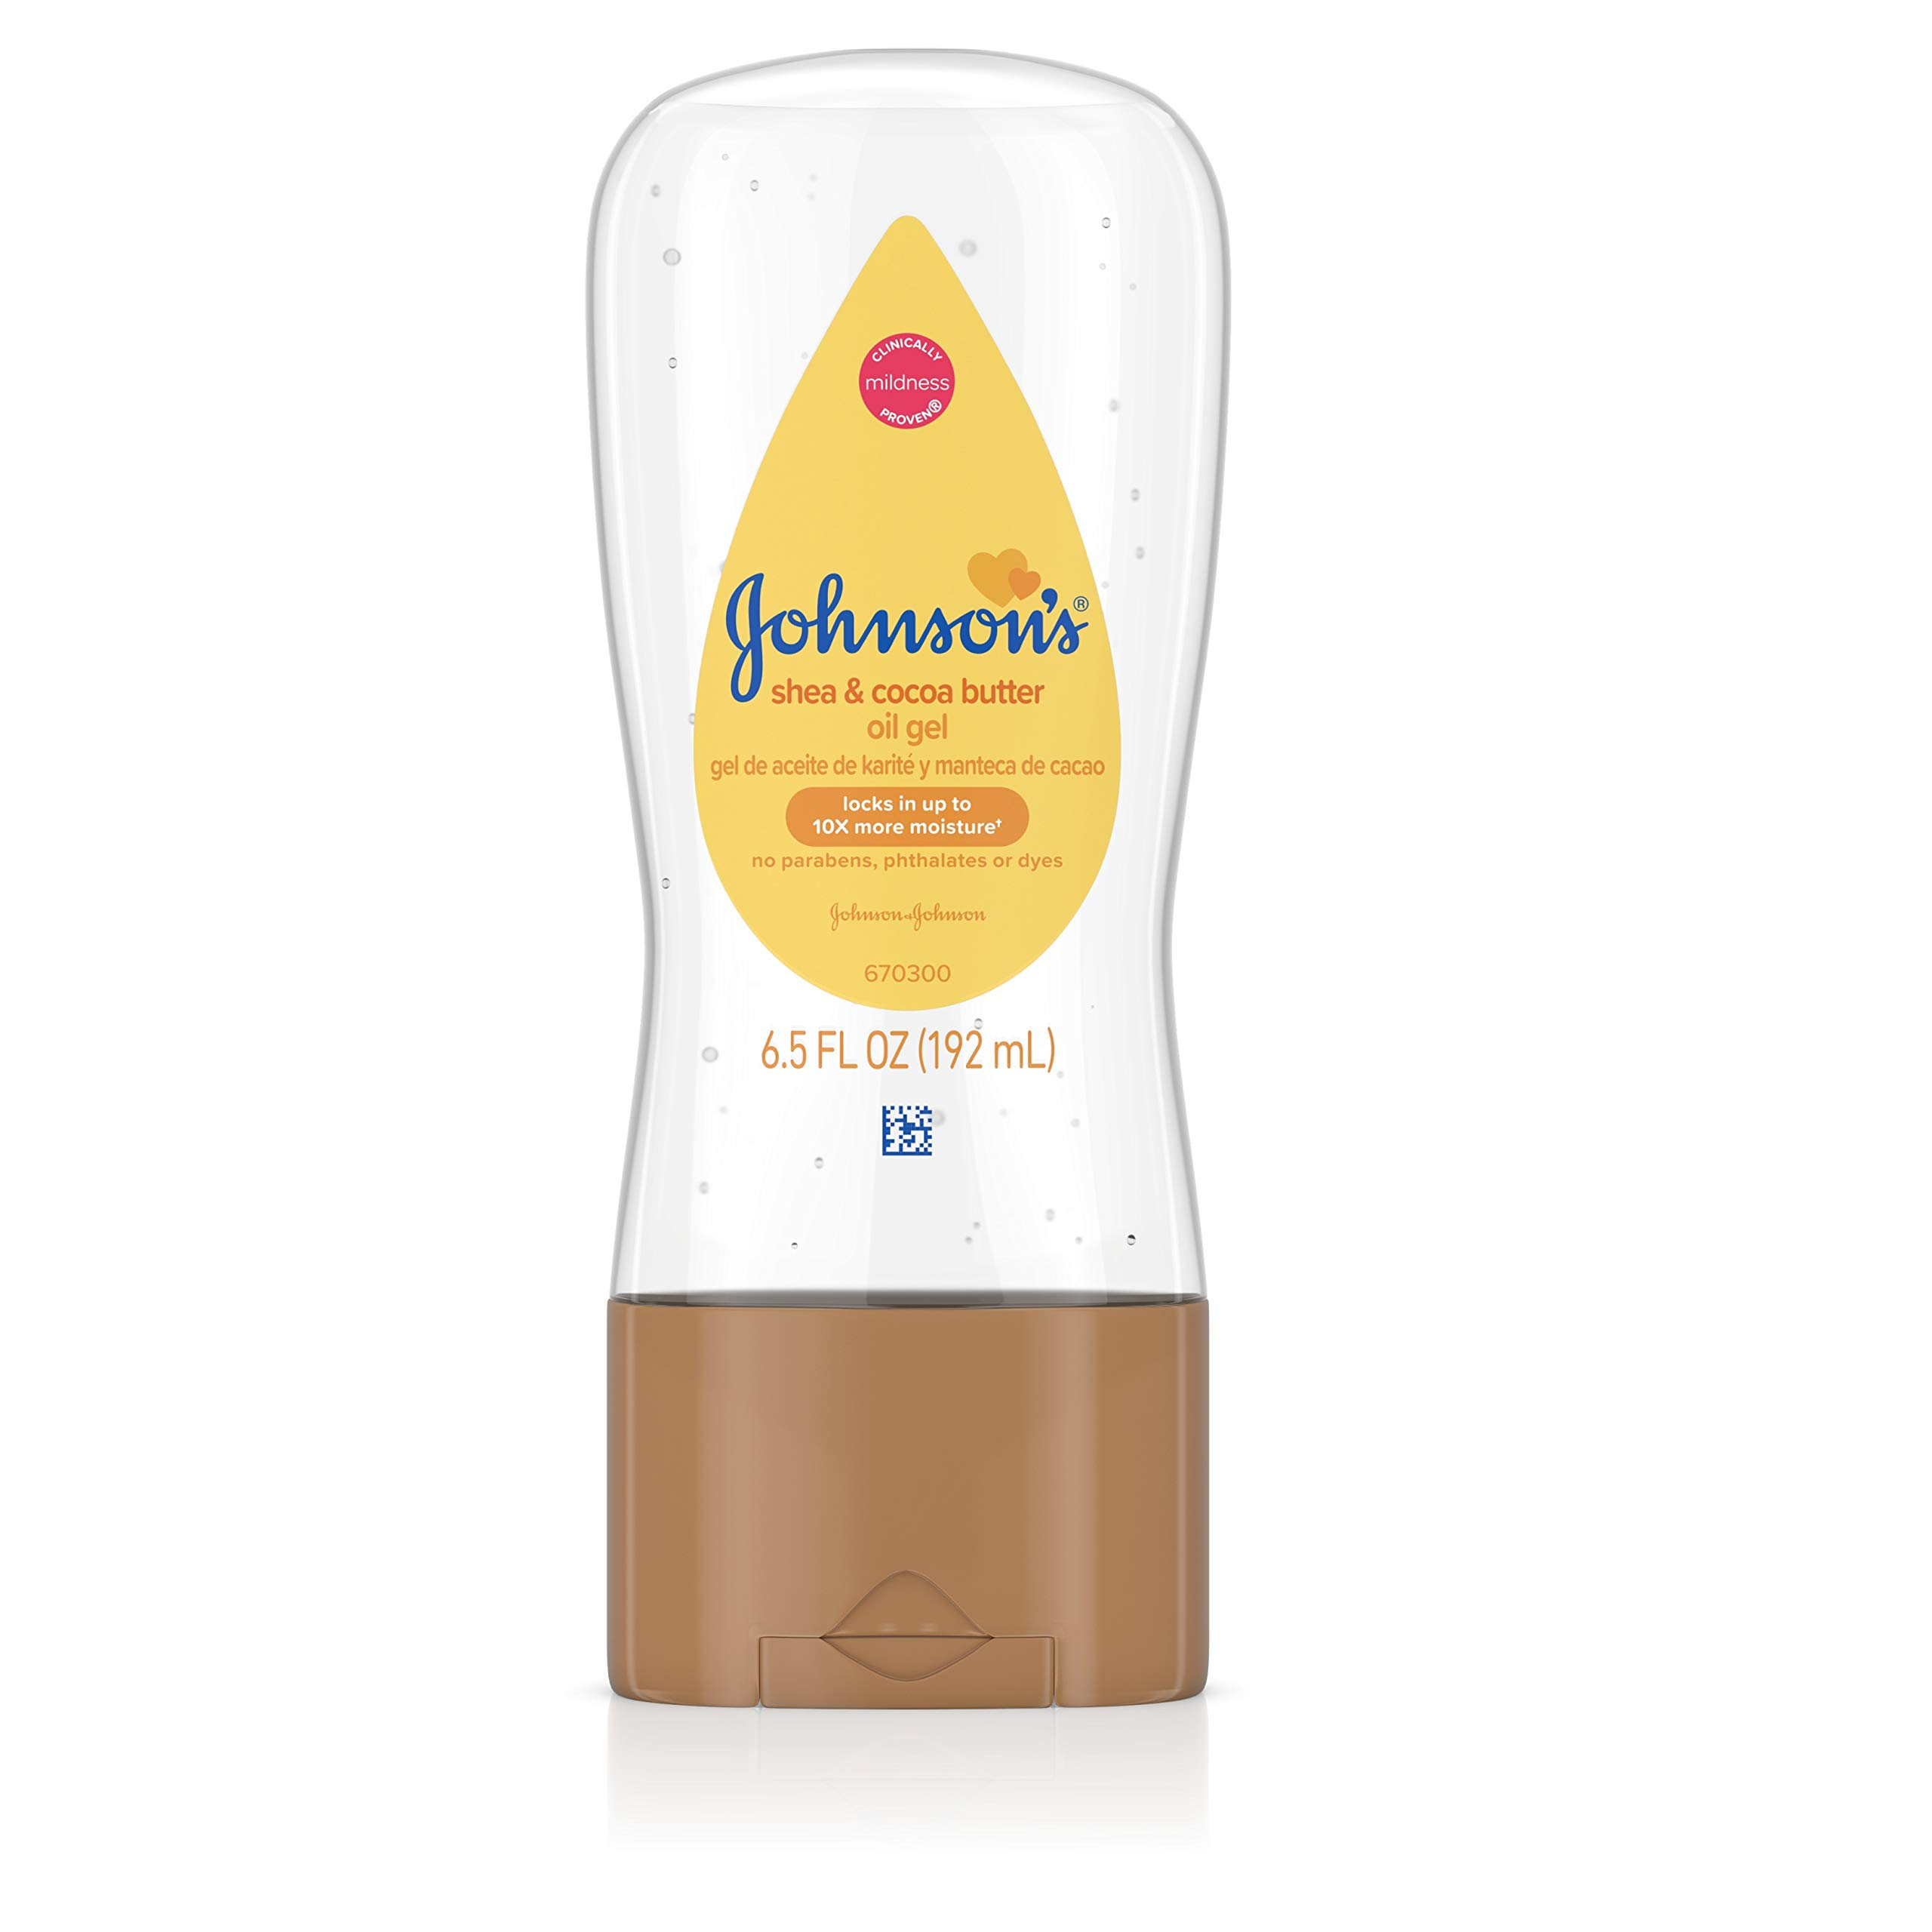 Johnson's Baby Oil Gel Enriched With Shea and Cocoa Butter, Great for Baby Massage, 6.5 fl. oz, Pack of 6 (Packaging May Vary) by Johnson's Baby